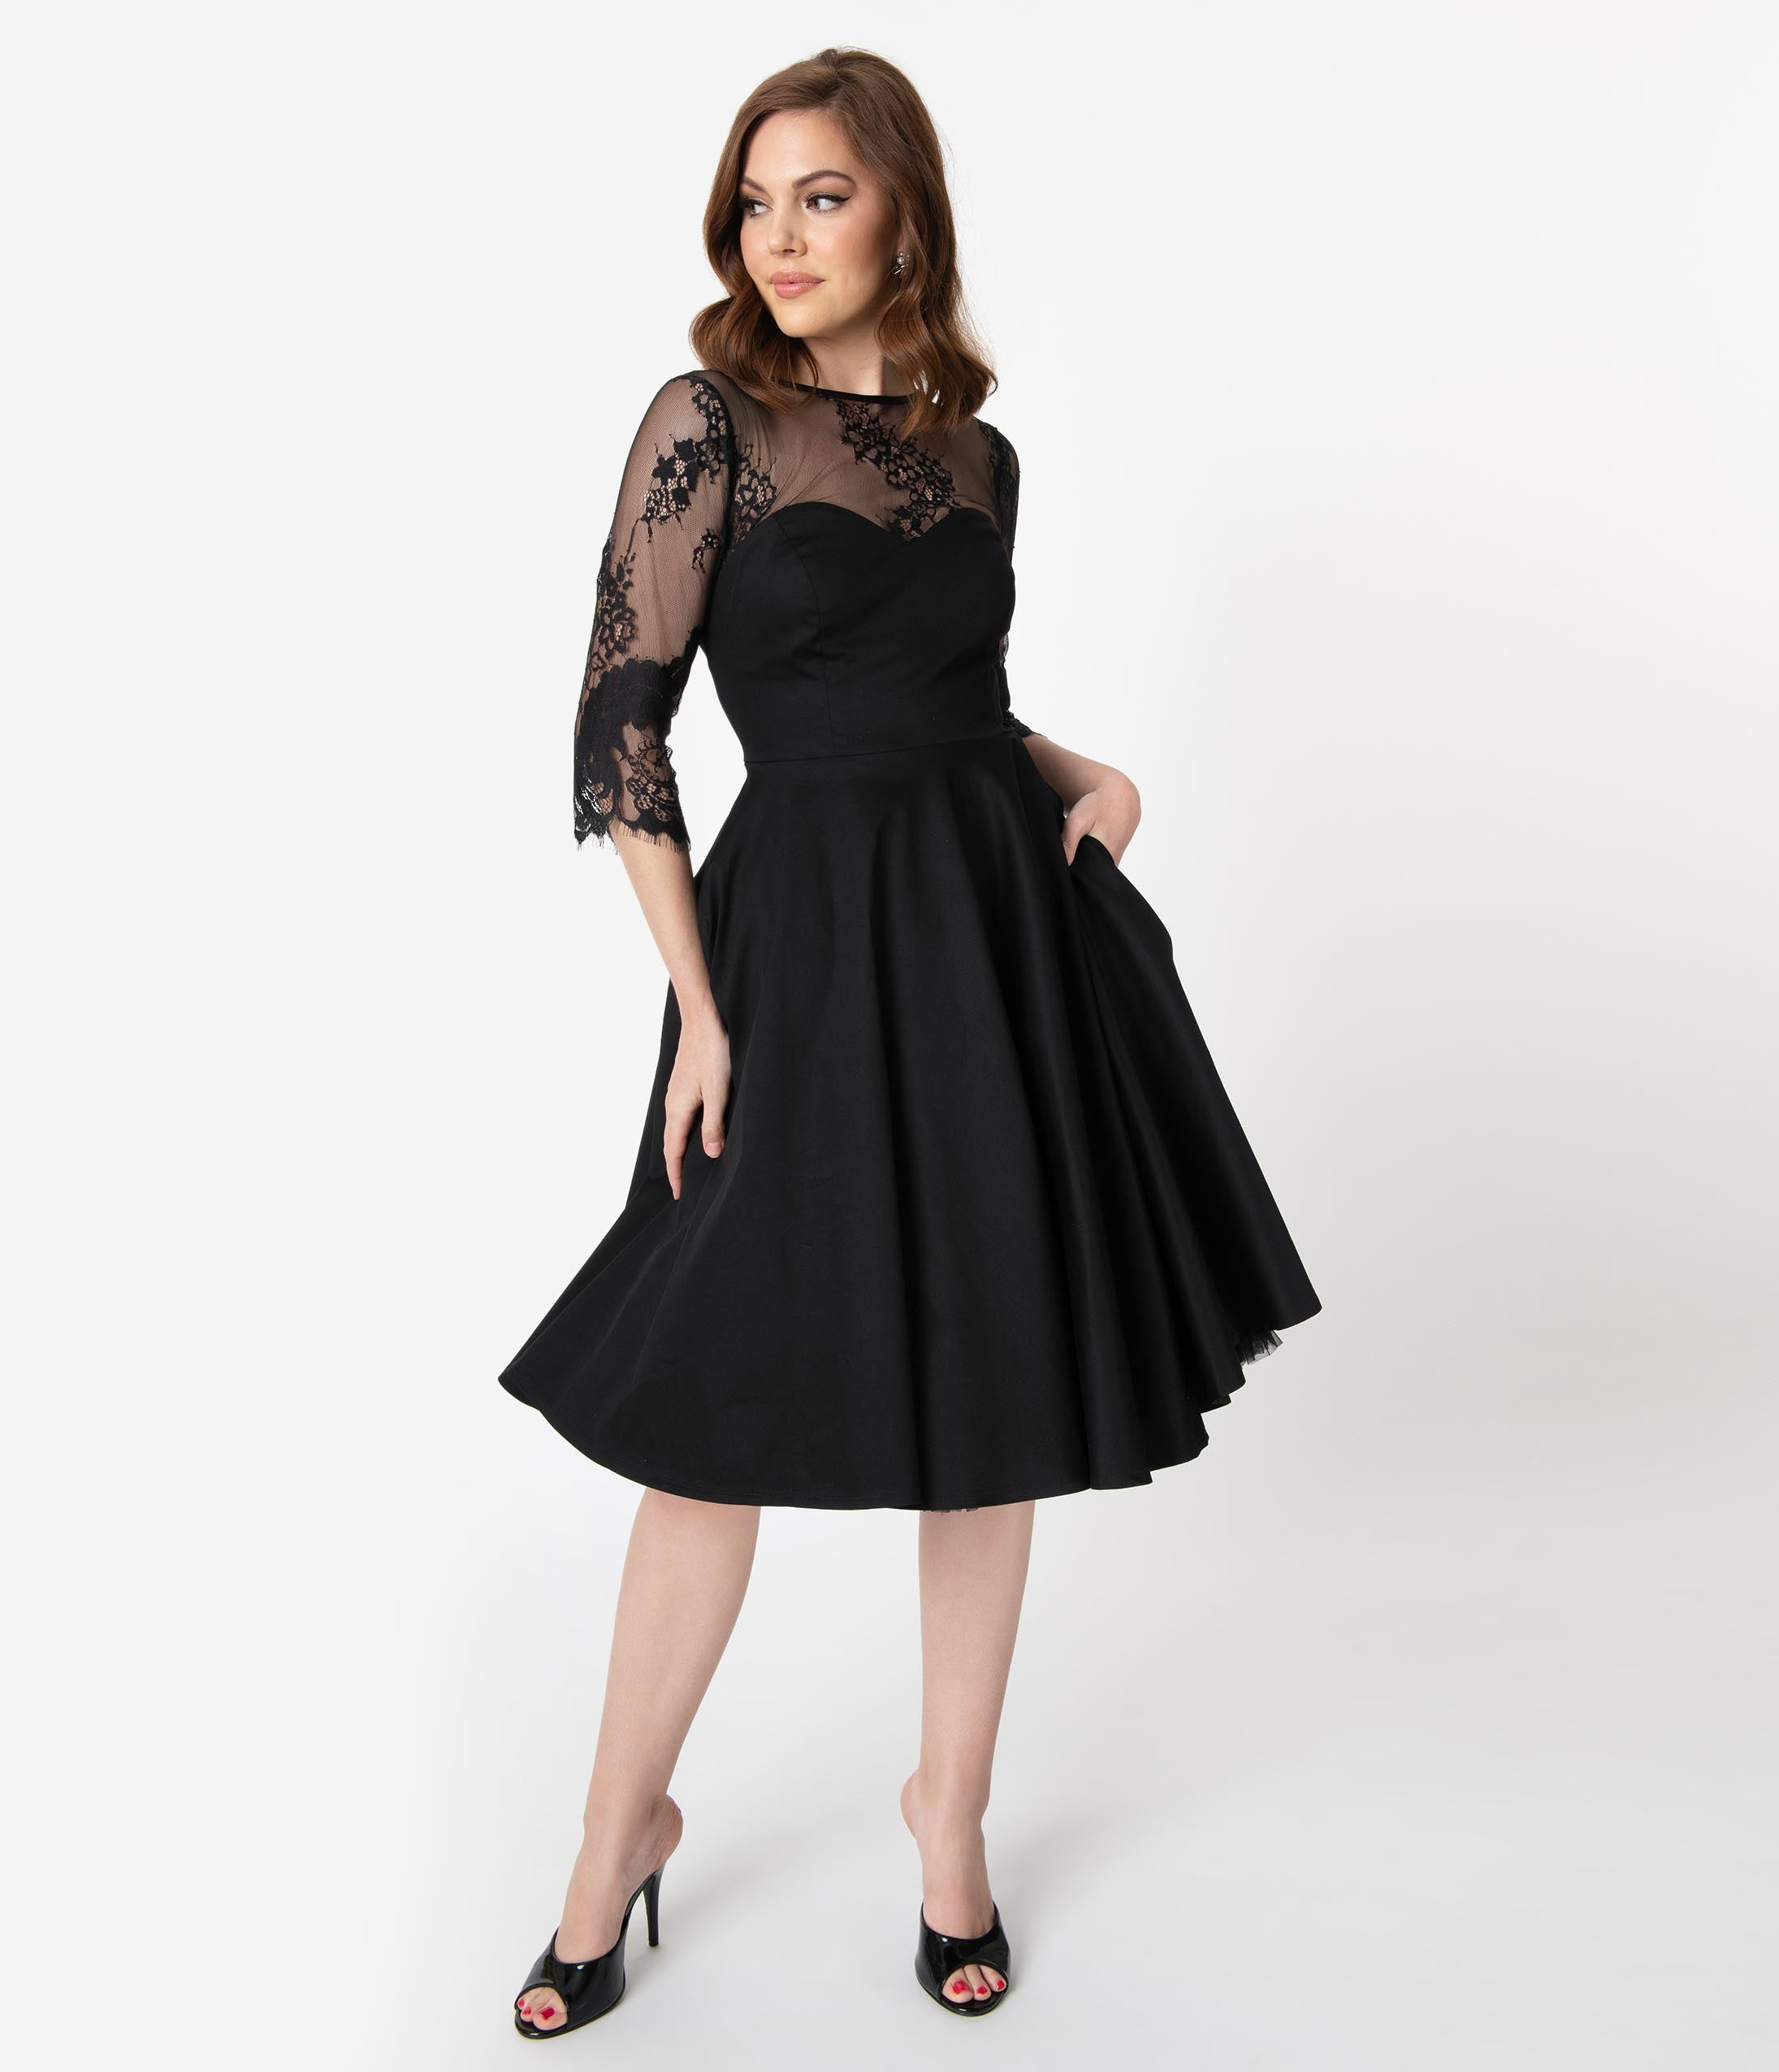 1950s Dresses, 50s Dresses | 1950s Style Dresses Vintage Diva 1950S Black Cotton  Lace Julia Swing Dress $136.00 AT vintagedancer.com